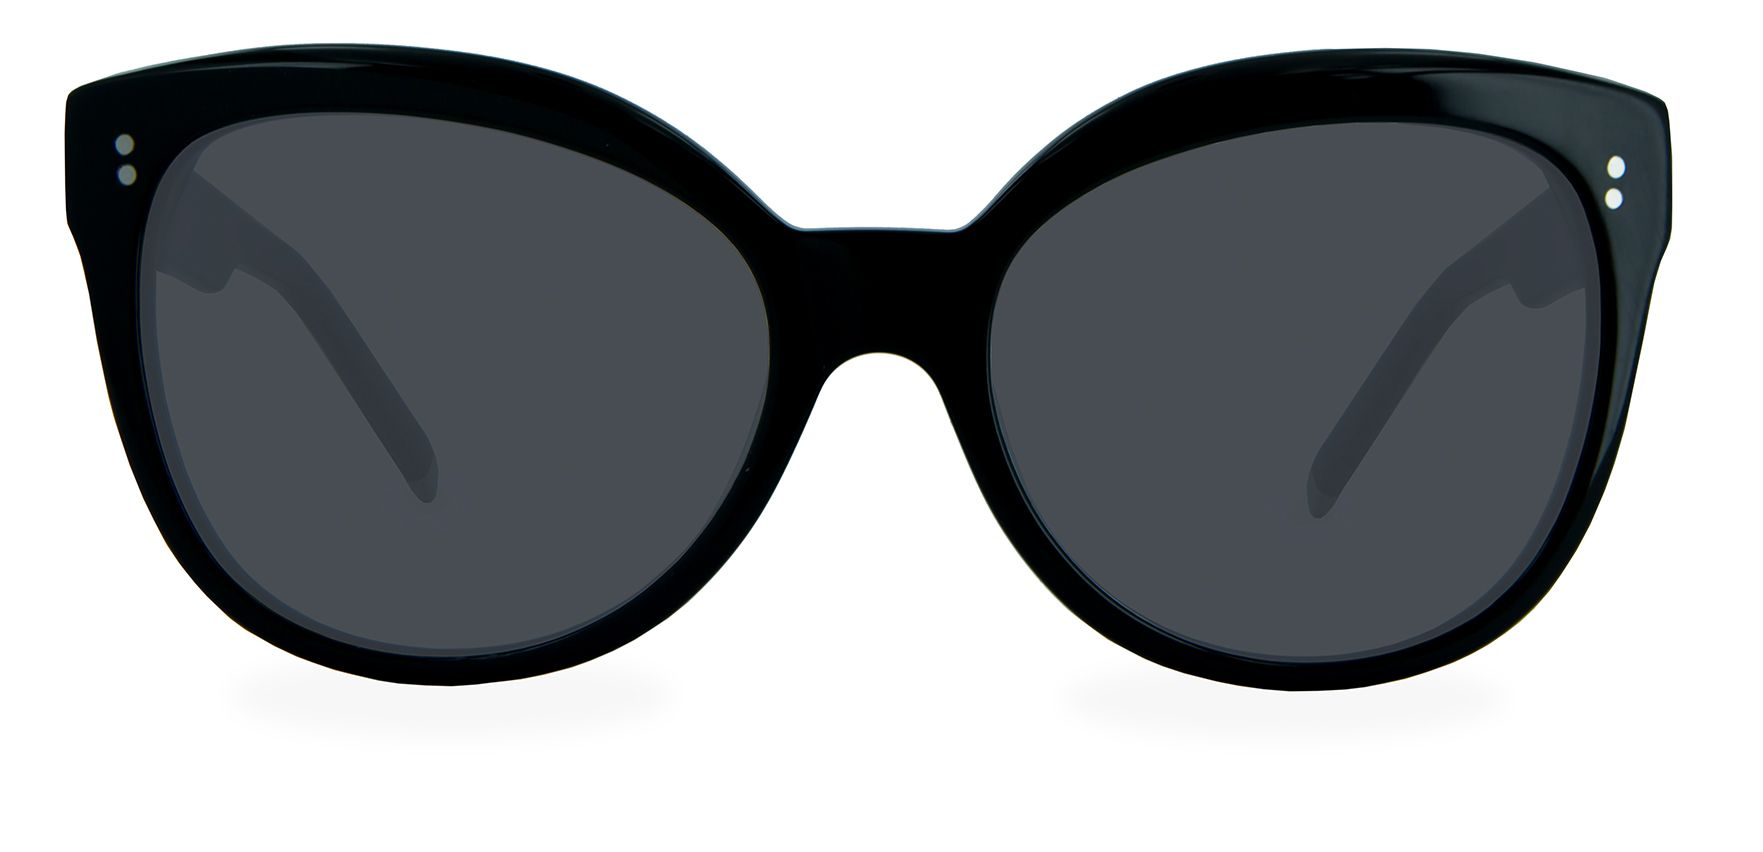 Black with Neutral Grey Lenses